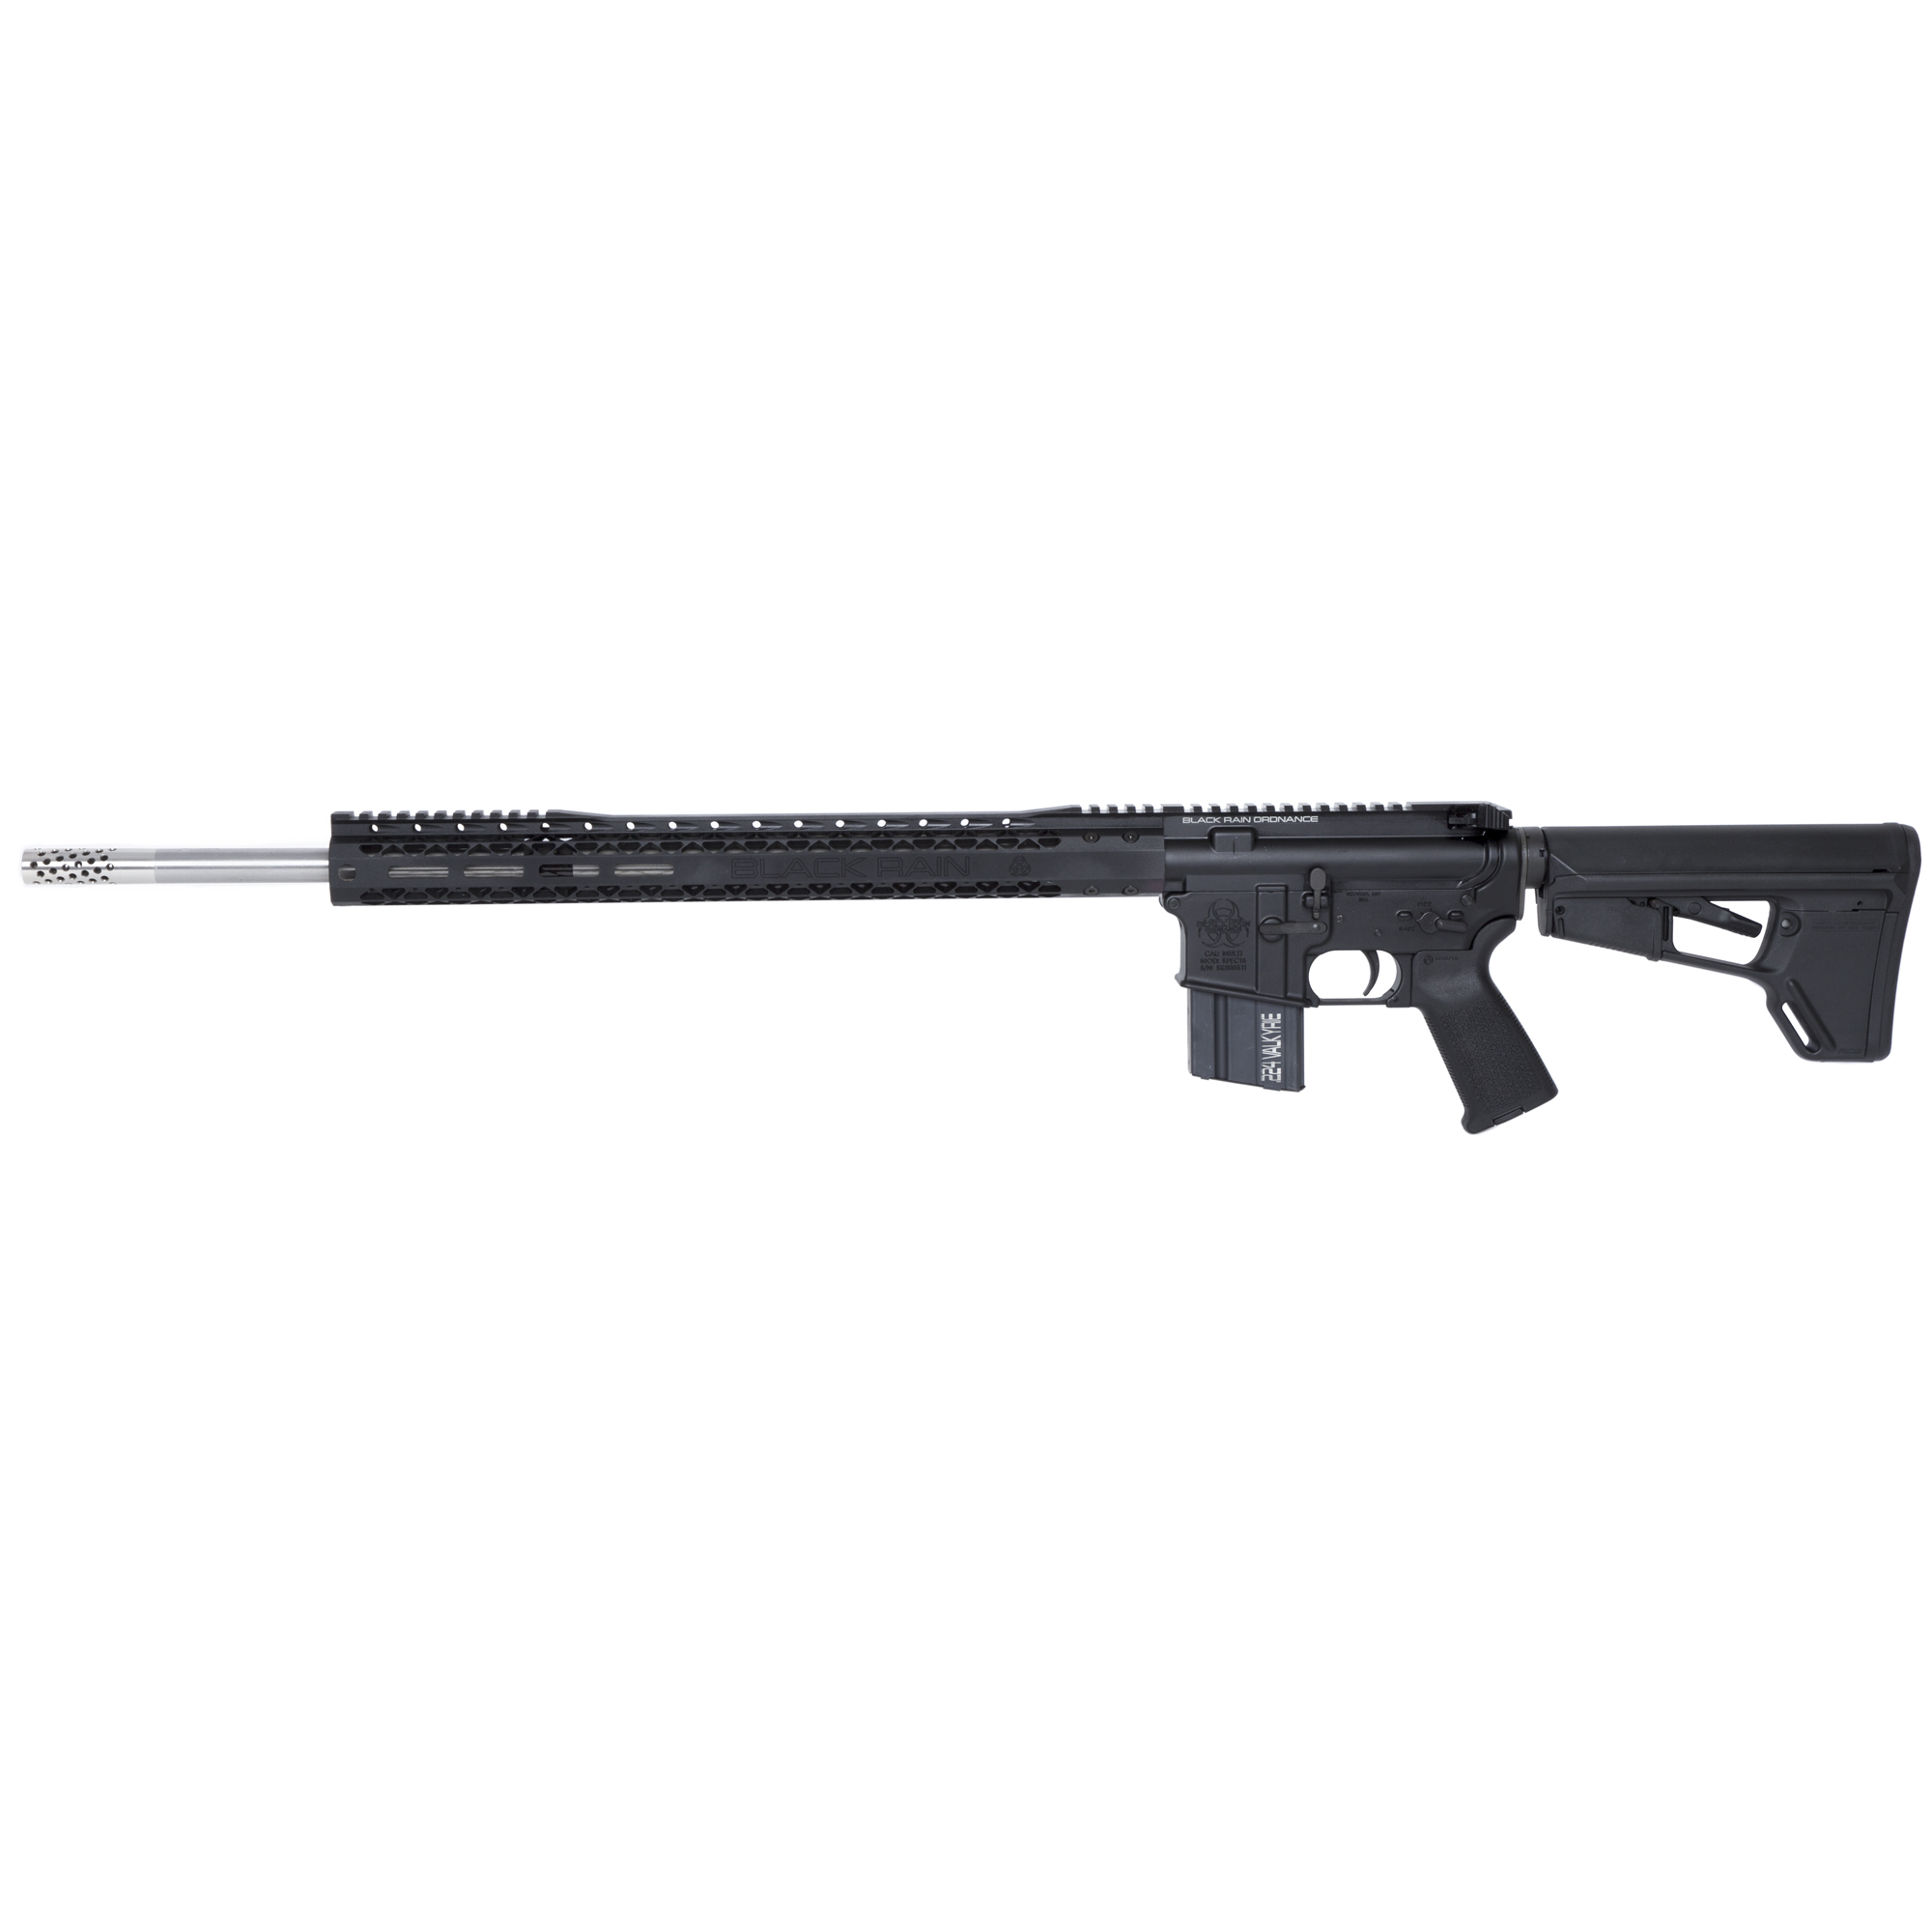 The Black Rain Ordnance Spec15 series is a line of AR15 rifles and pistols built to meet bid requirements for law enforcement and military personnel and as an affordable option for civilian use.